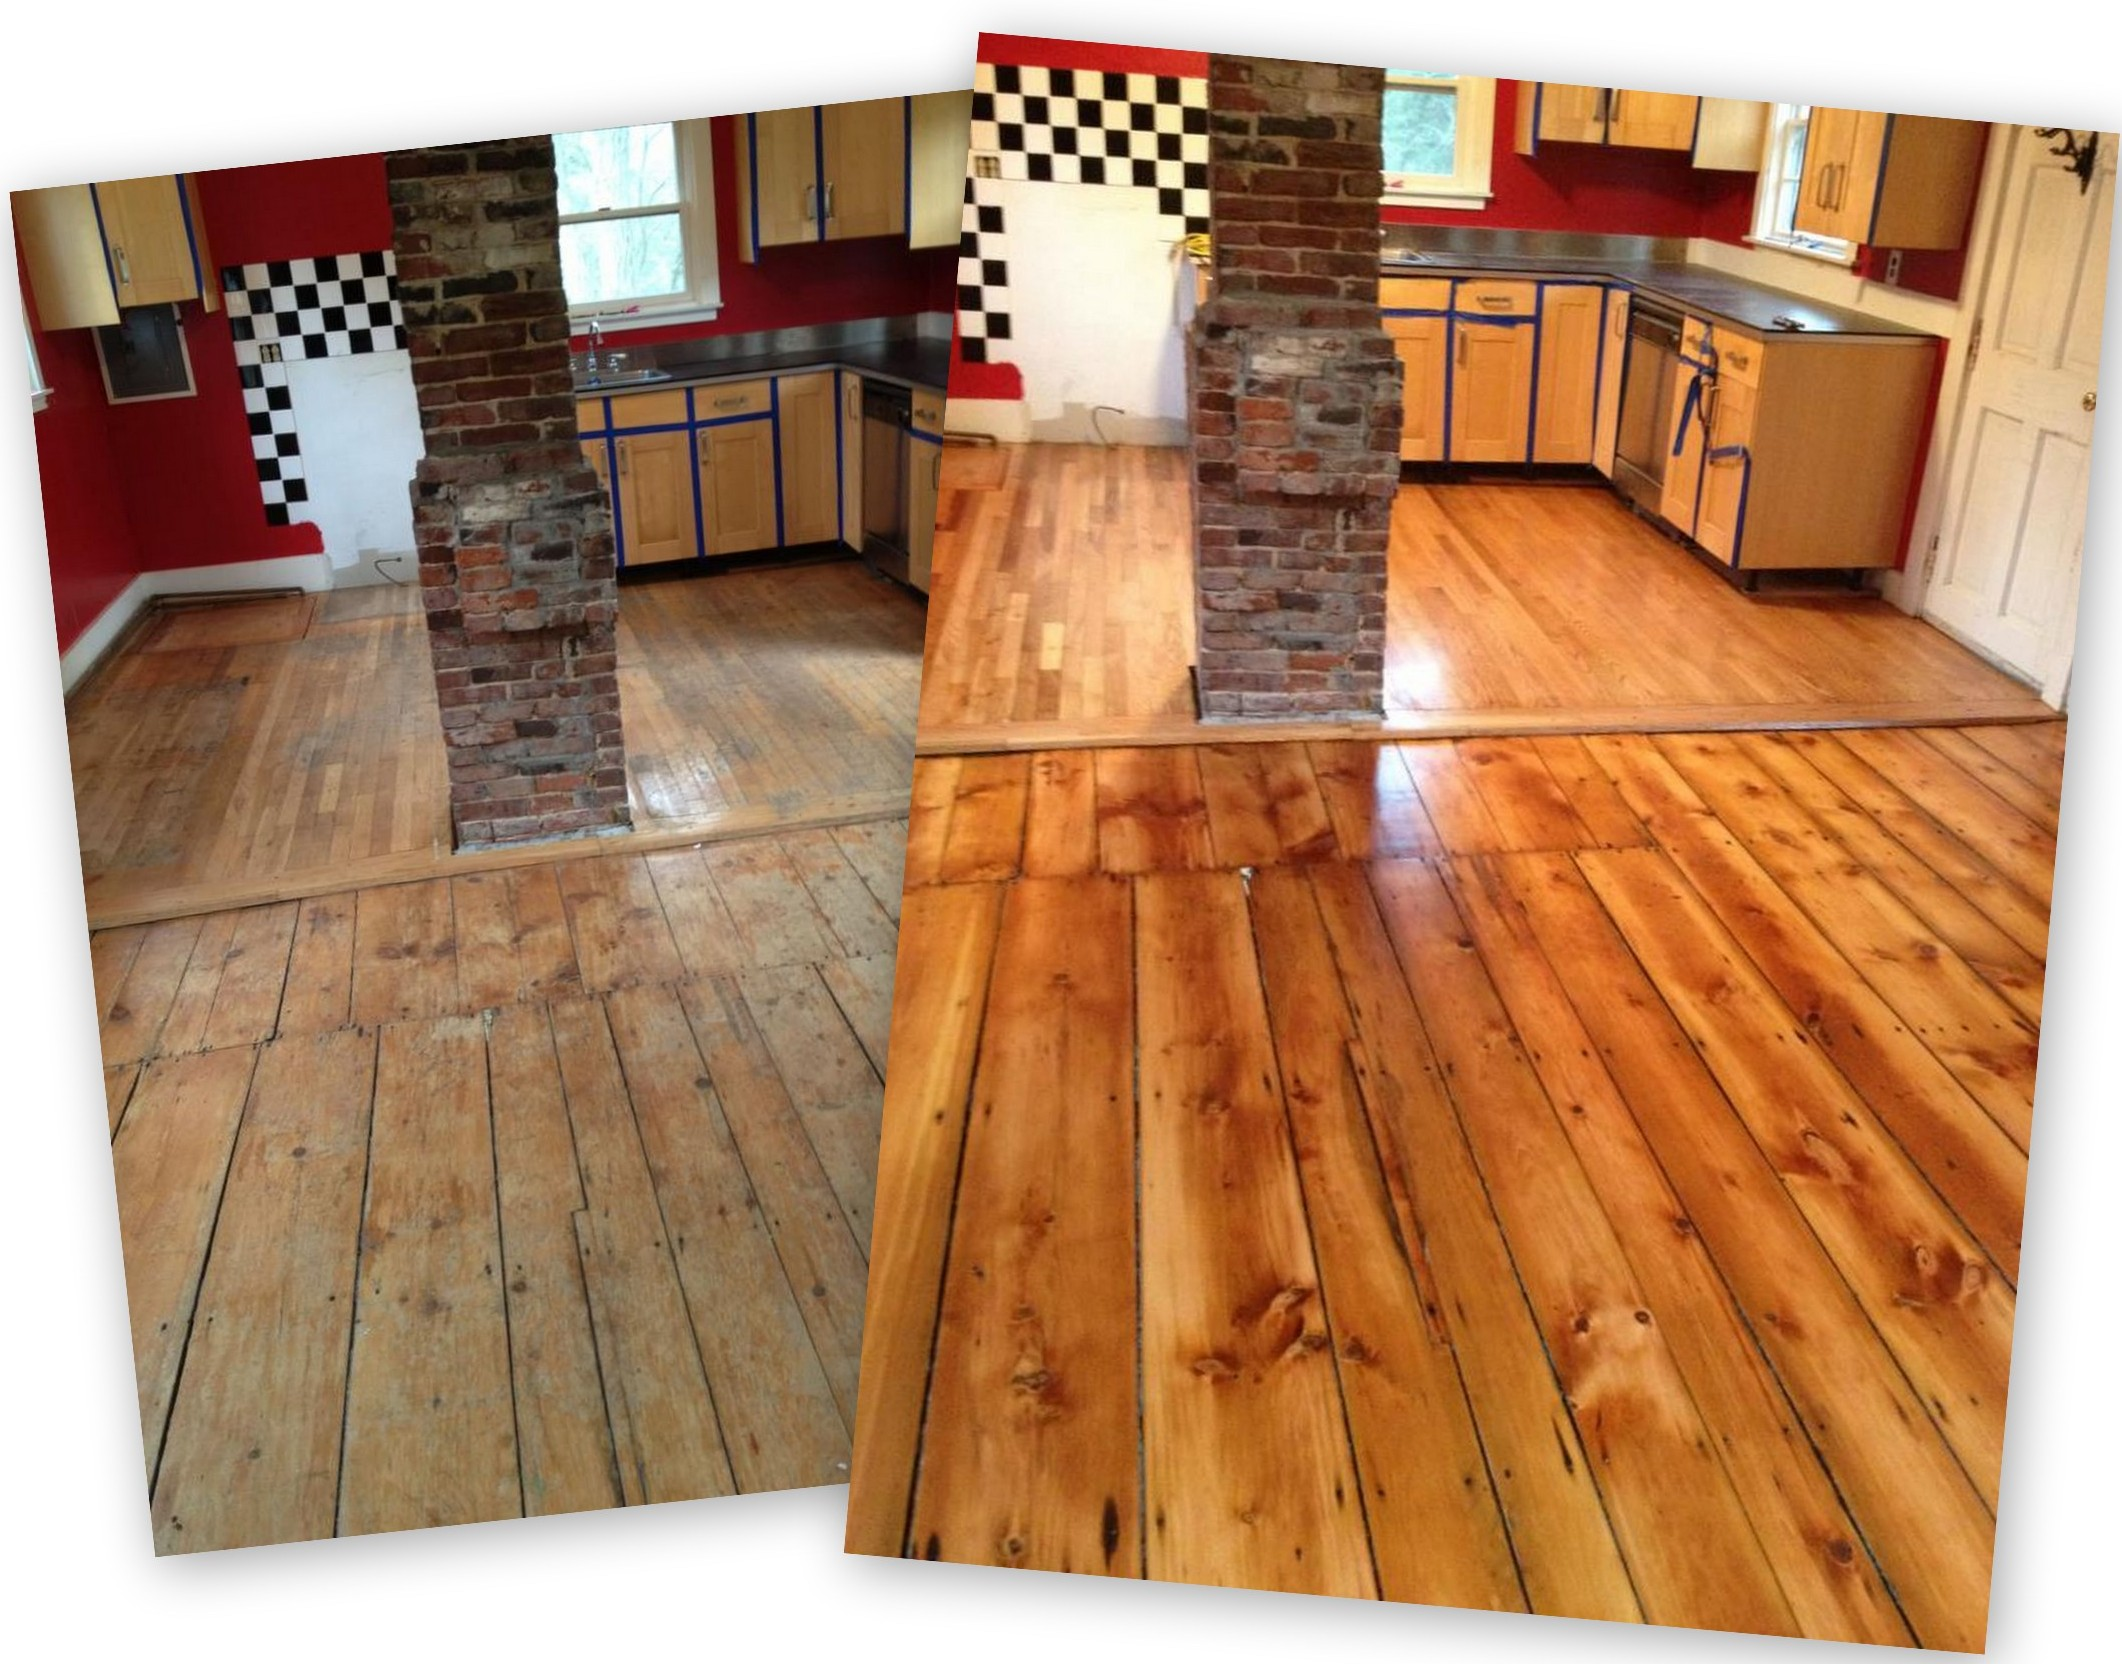 New And Refinished Floors By Olde Towne Floors Wellfleet MA - Hardwood floor refinishing cape cod ma